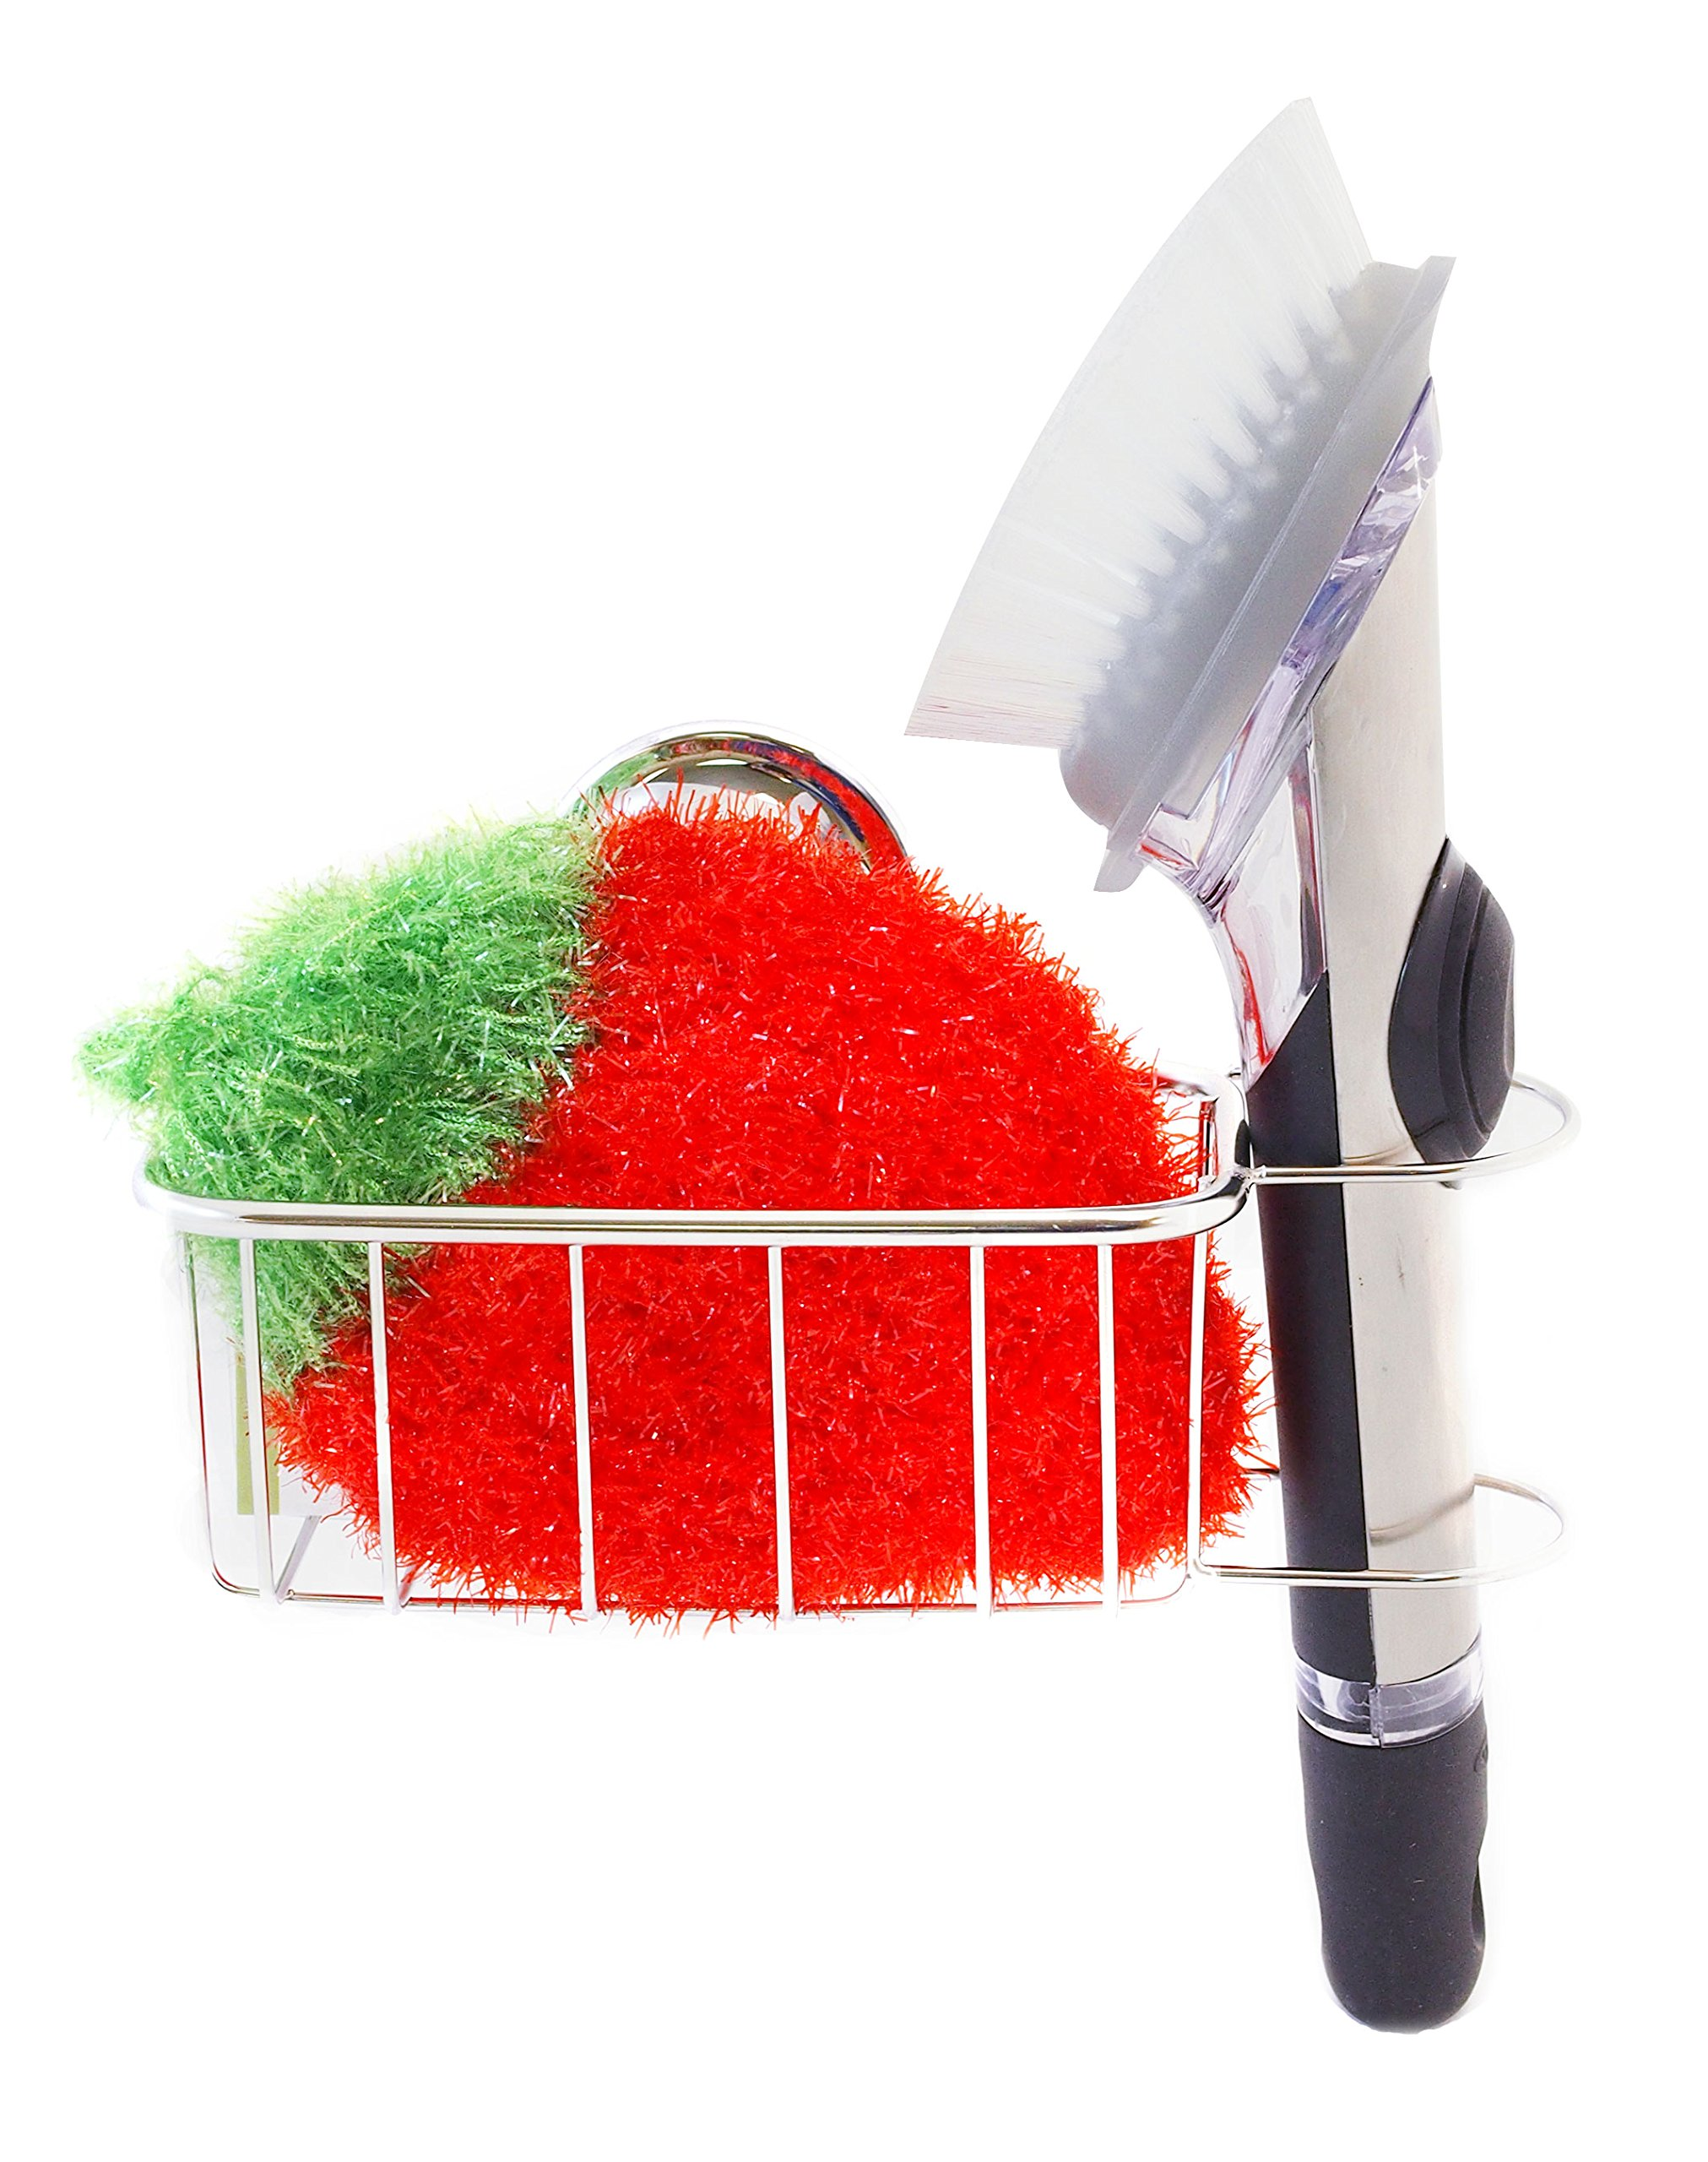 The Crown Choice Sponge Holder and Dish Scrubbie Set   Kitchen Sink Organizer or Brush Caddy with Non-Scratch Scrubbing Pad   Stainless Steel Suction Basket for Sponges, Scrubbers, Dish Brushes